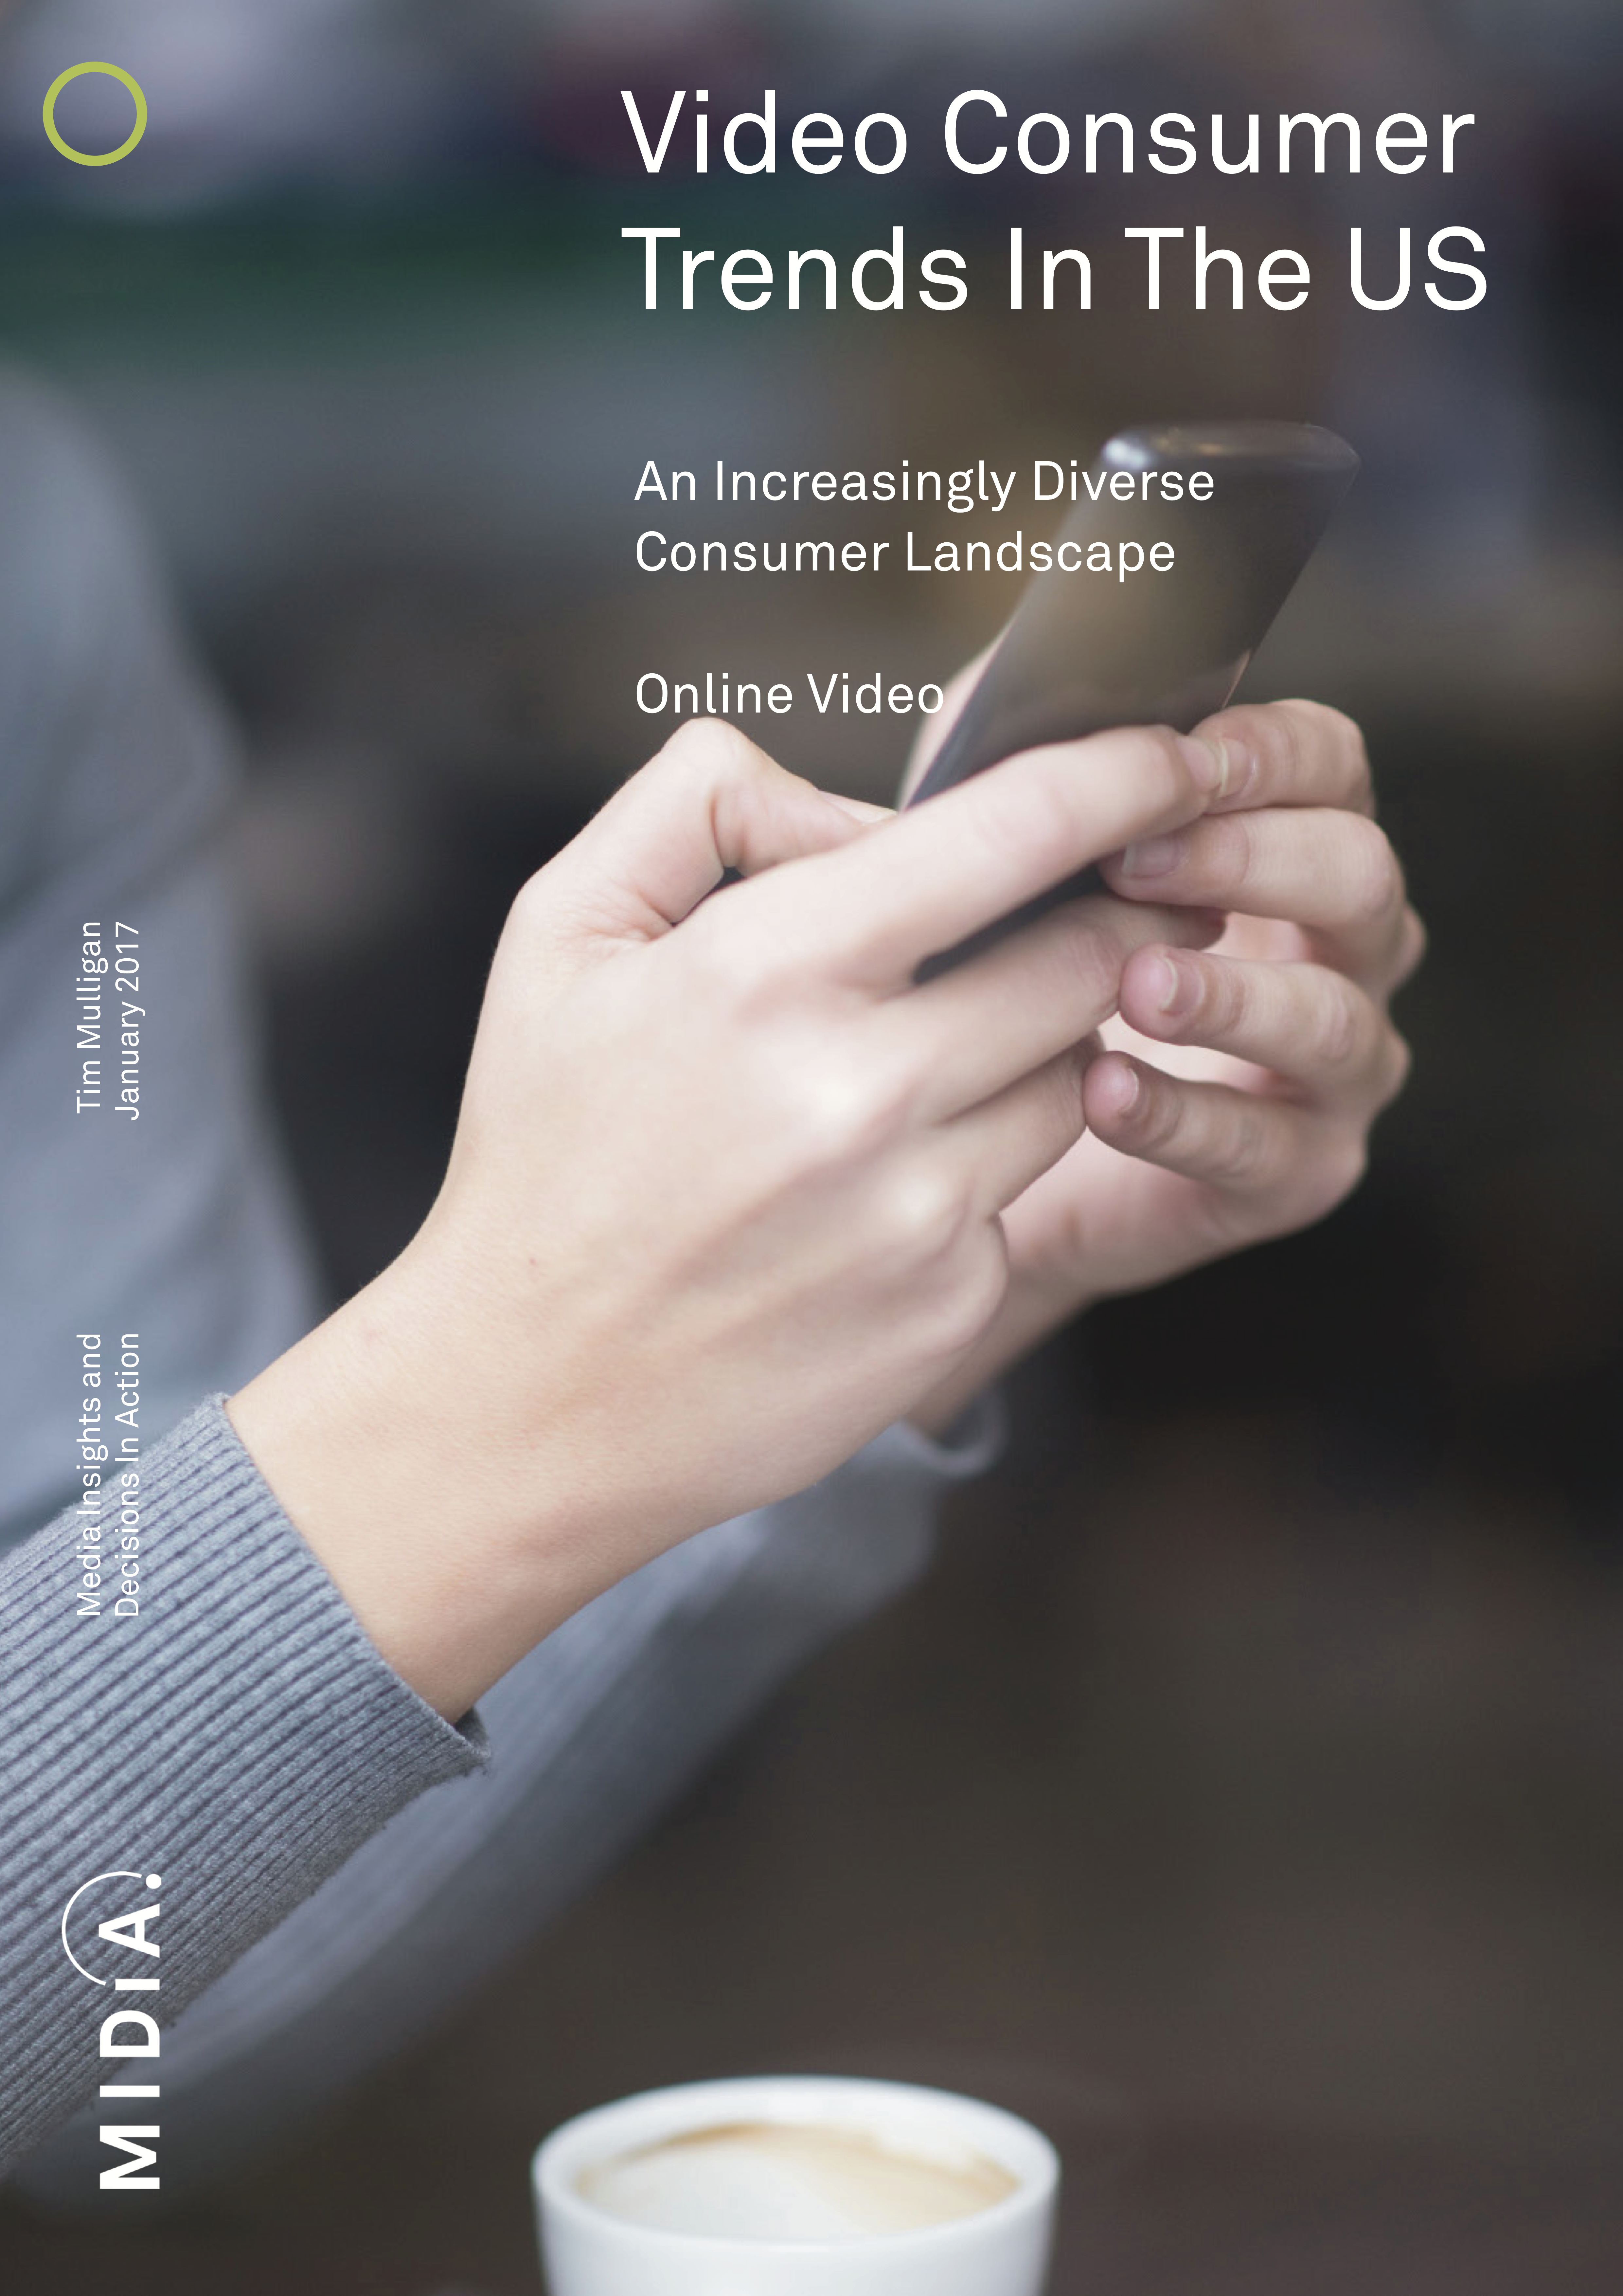 Cover image for US Video Market Overview